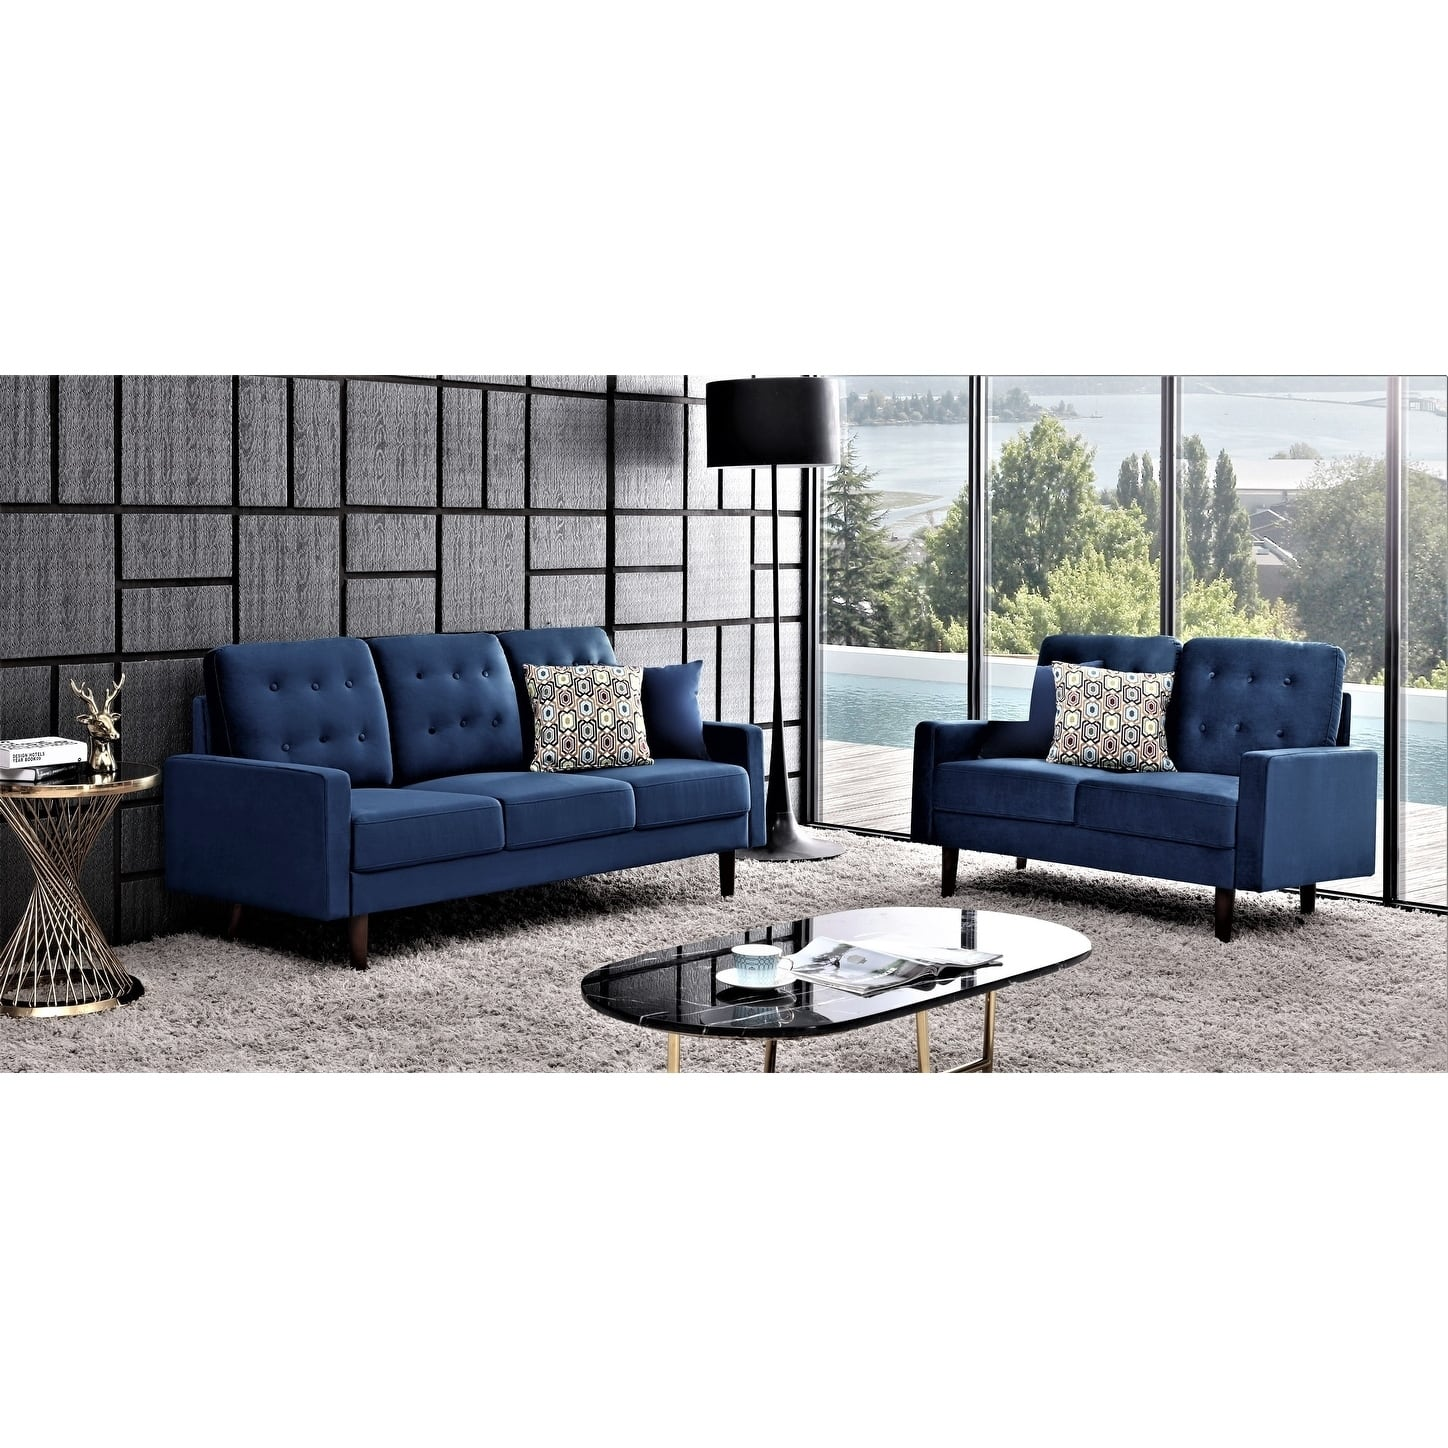 Great Deals On Furniture Online: Buy Sofas & Couches Online At Overstock